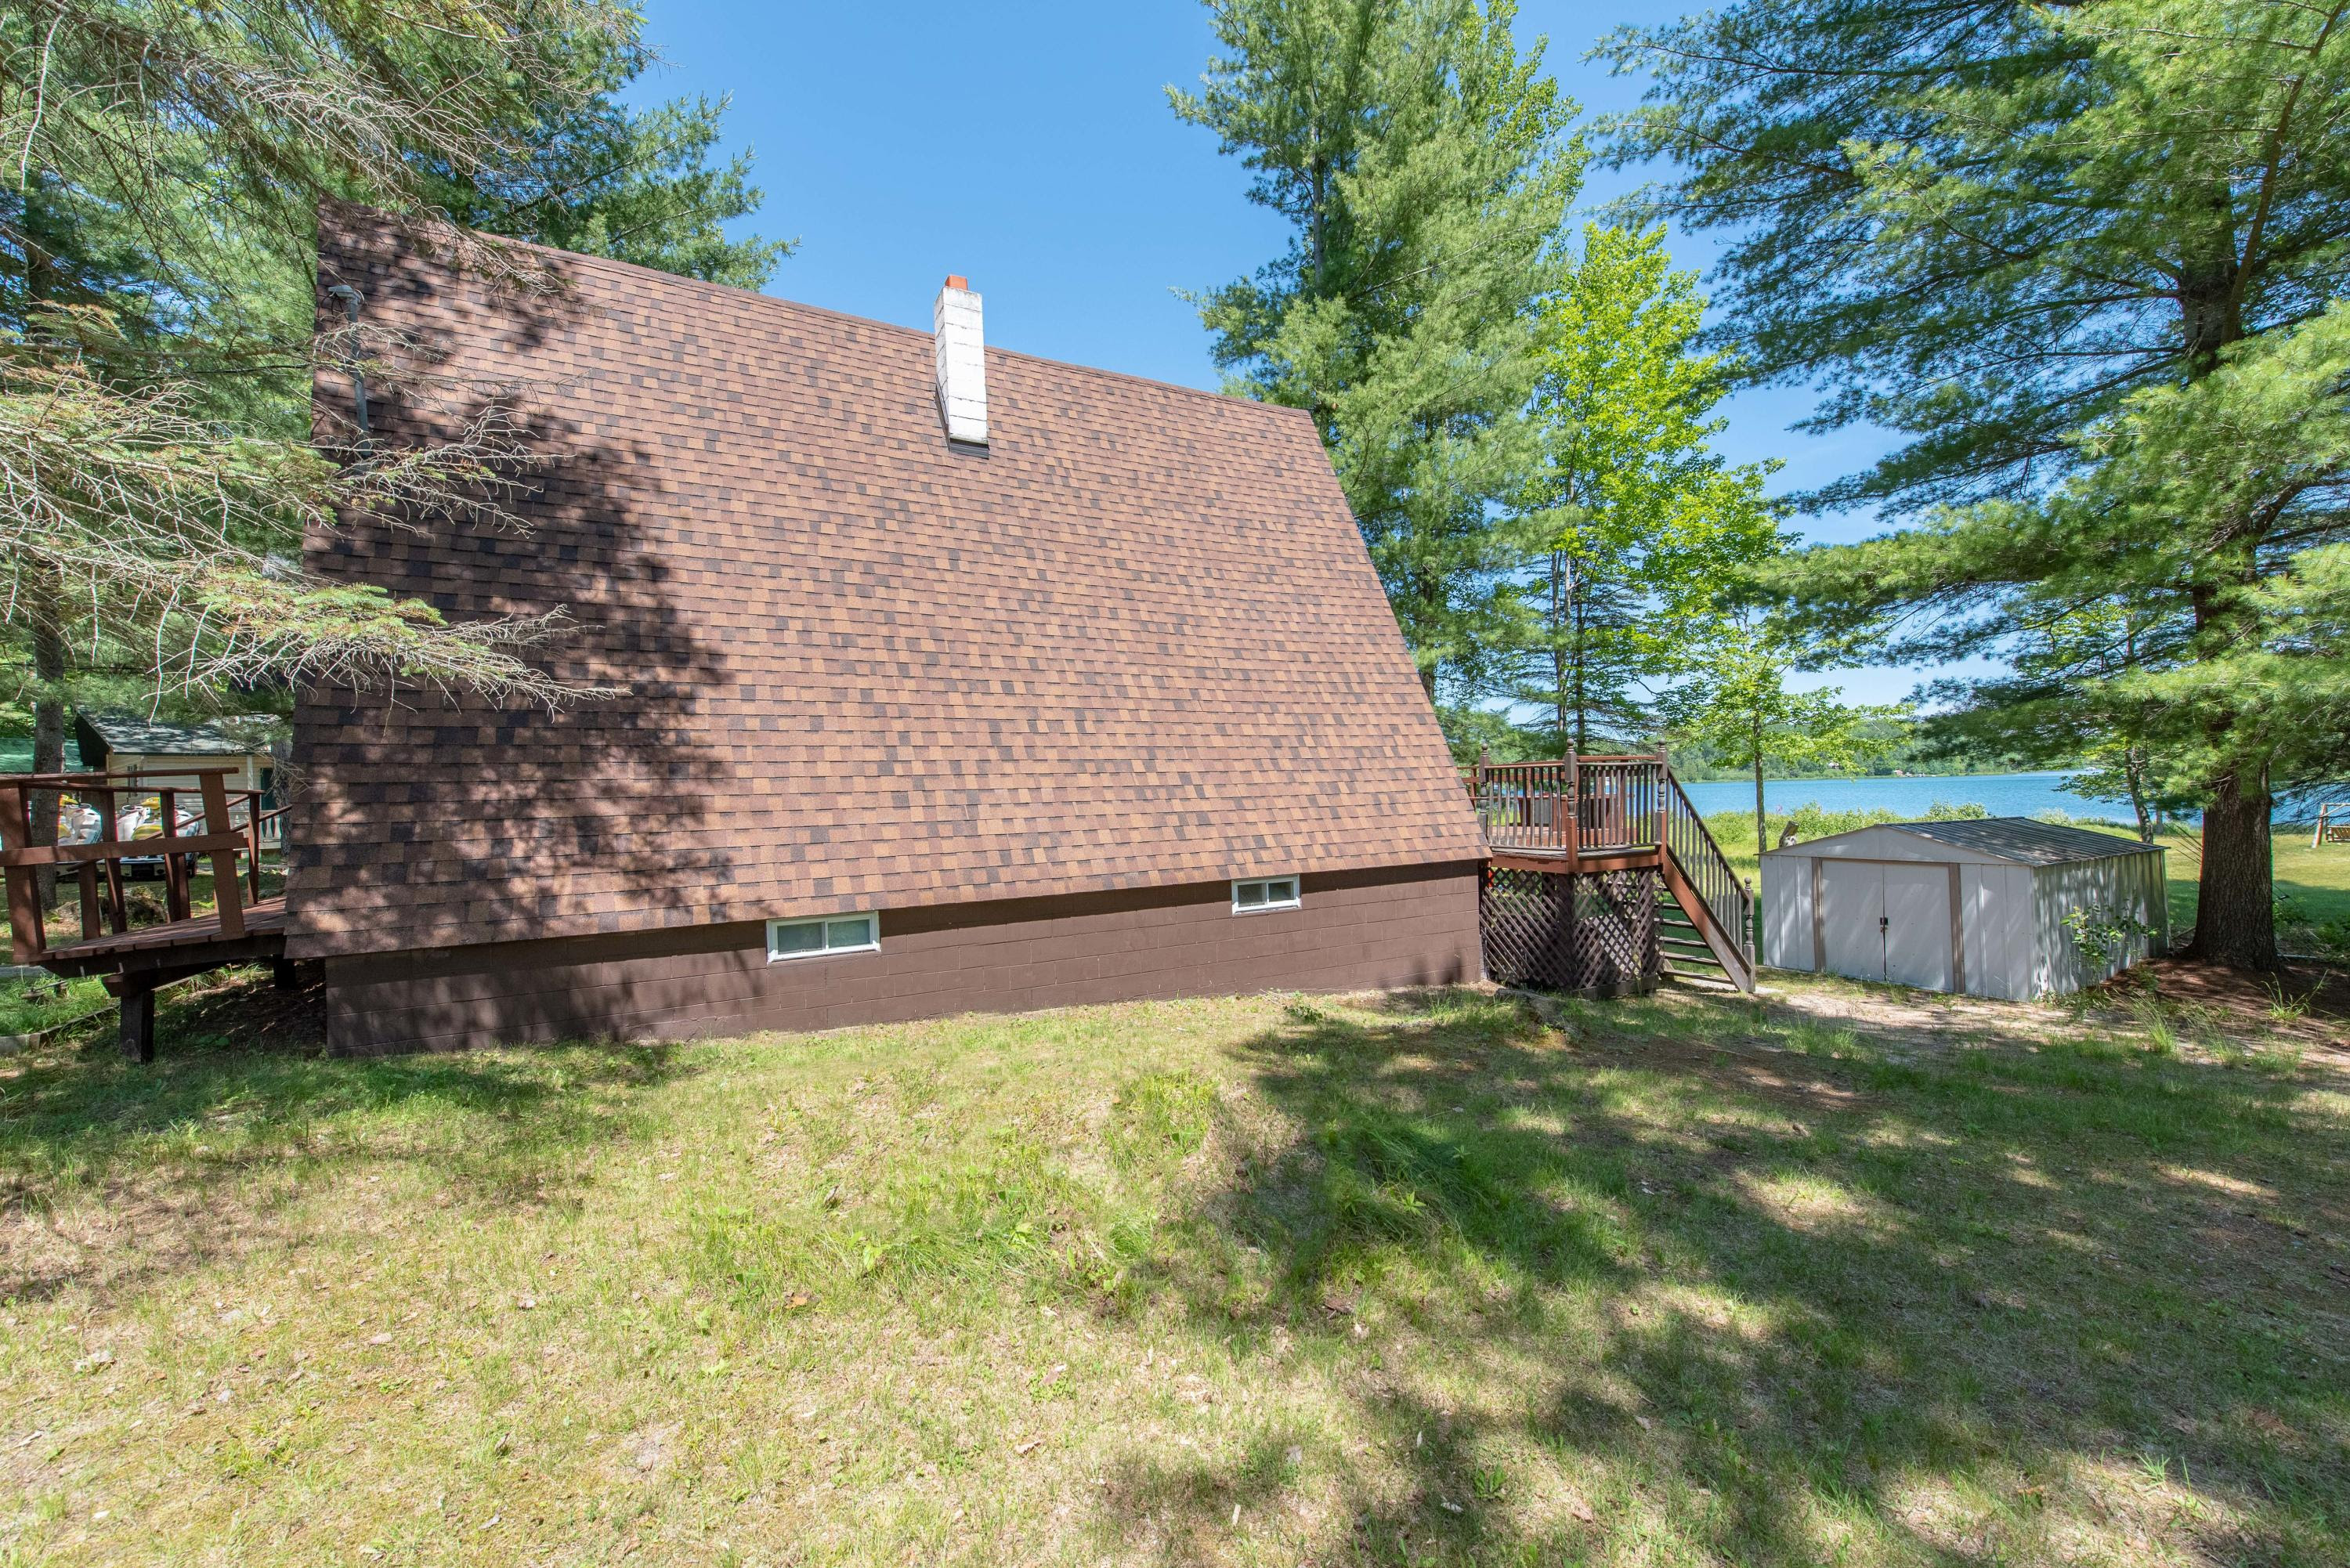 Property in Grayling, Gaylord, Otsego Lake, Lake Tecon ...